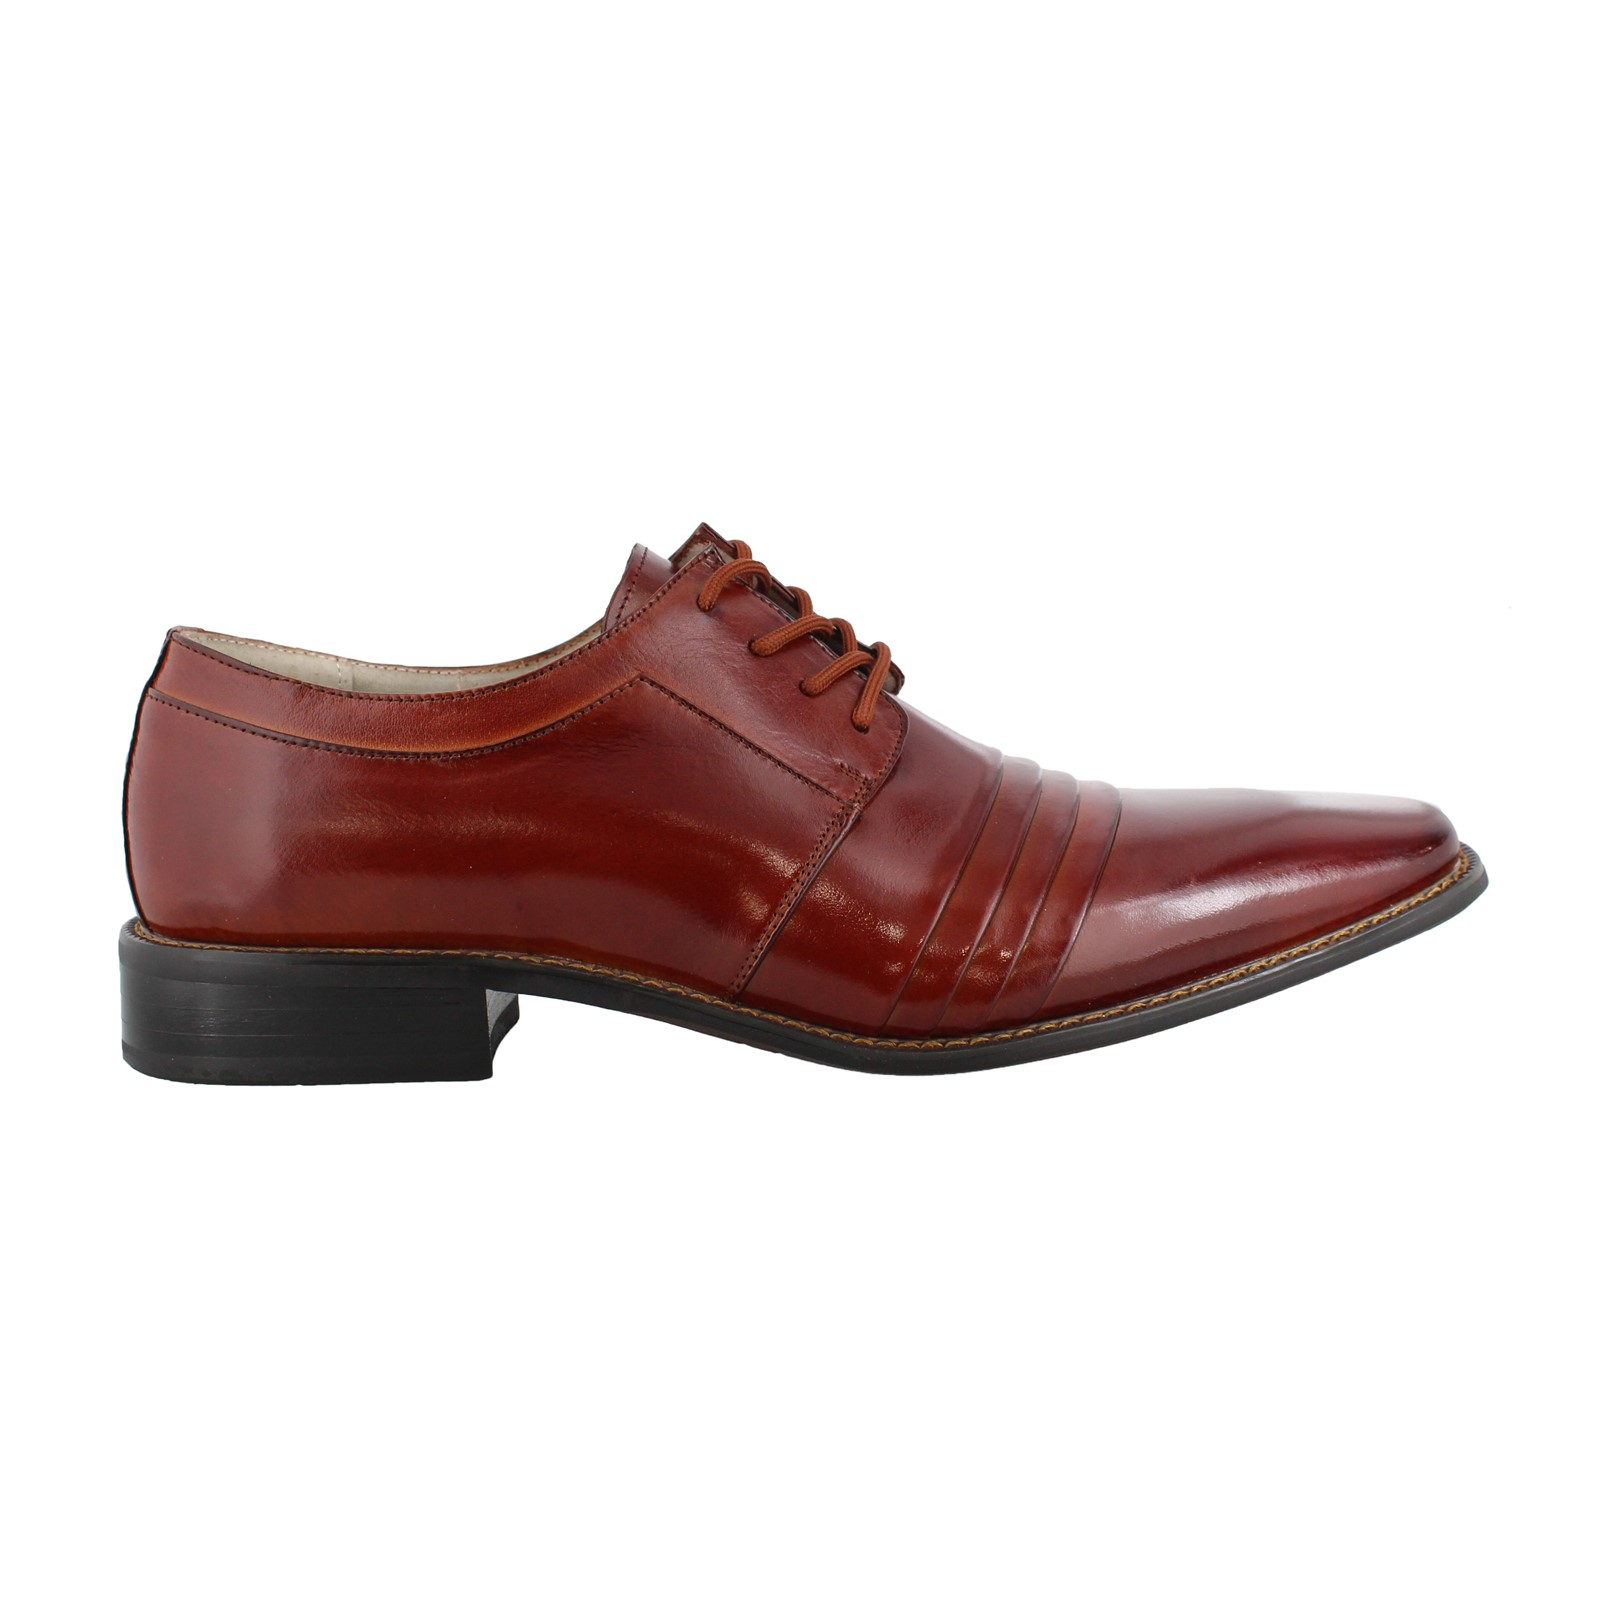 Men's Stacy Adams, Raynor Lace up Oxfords